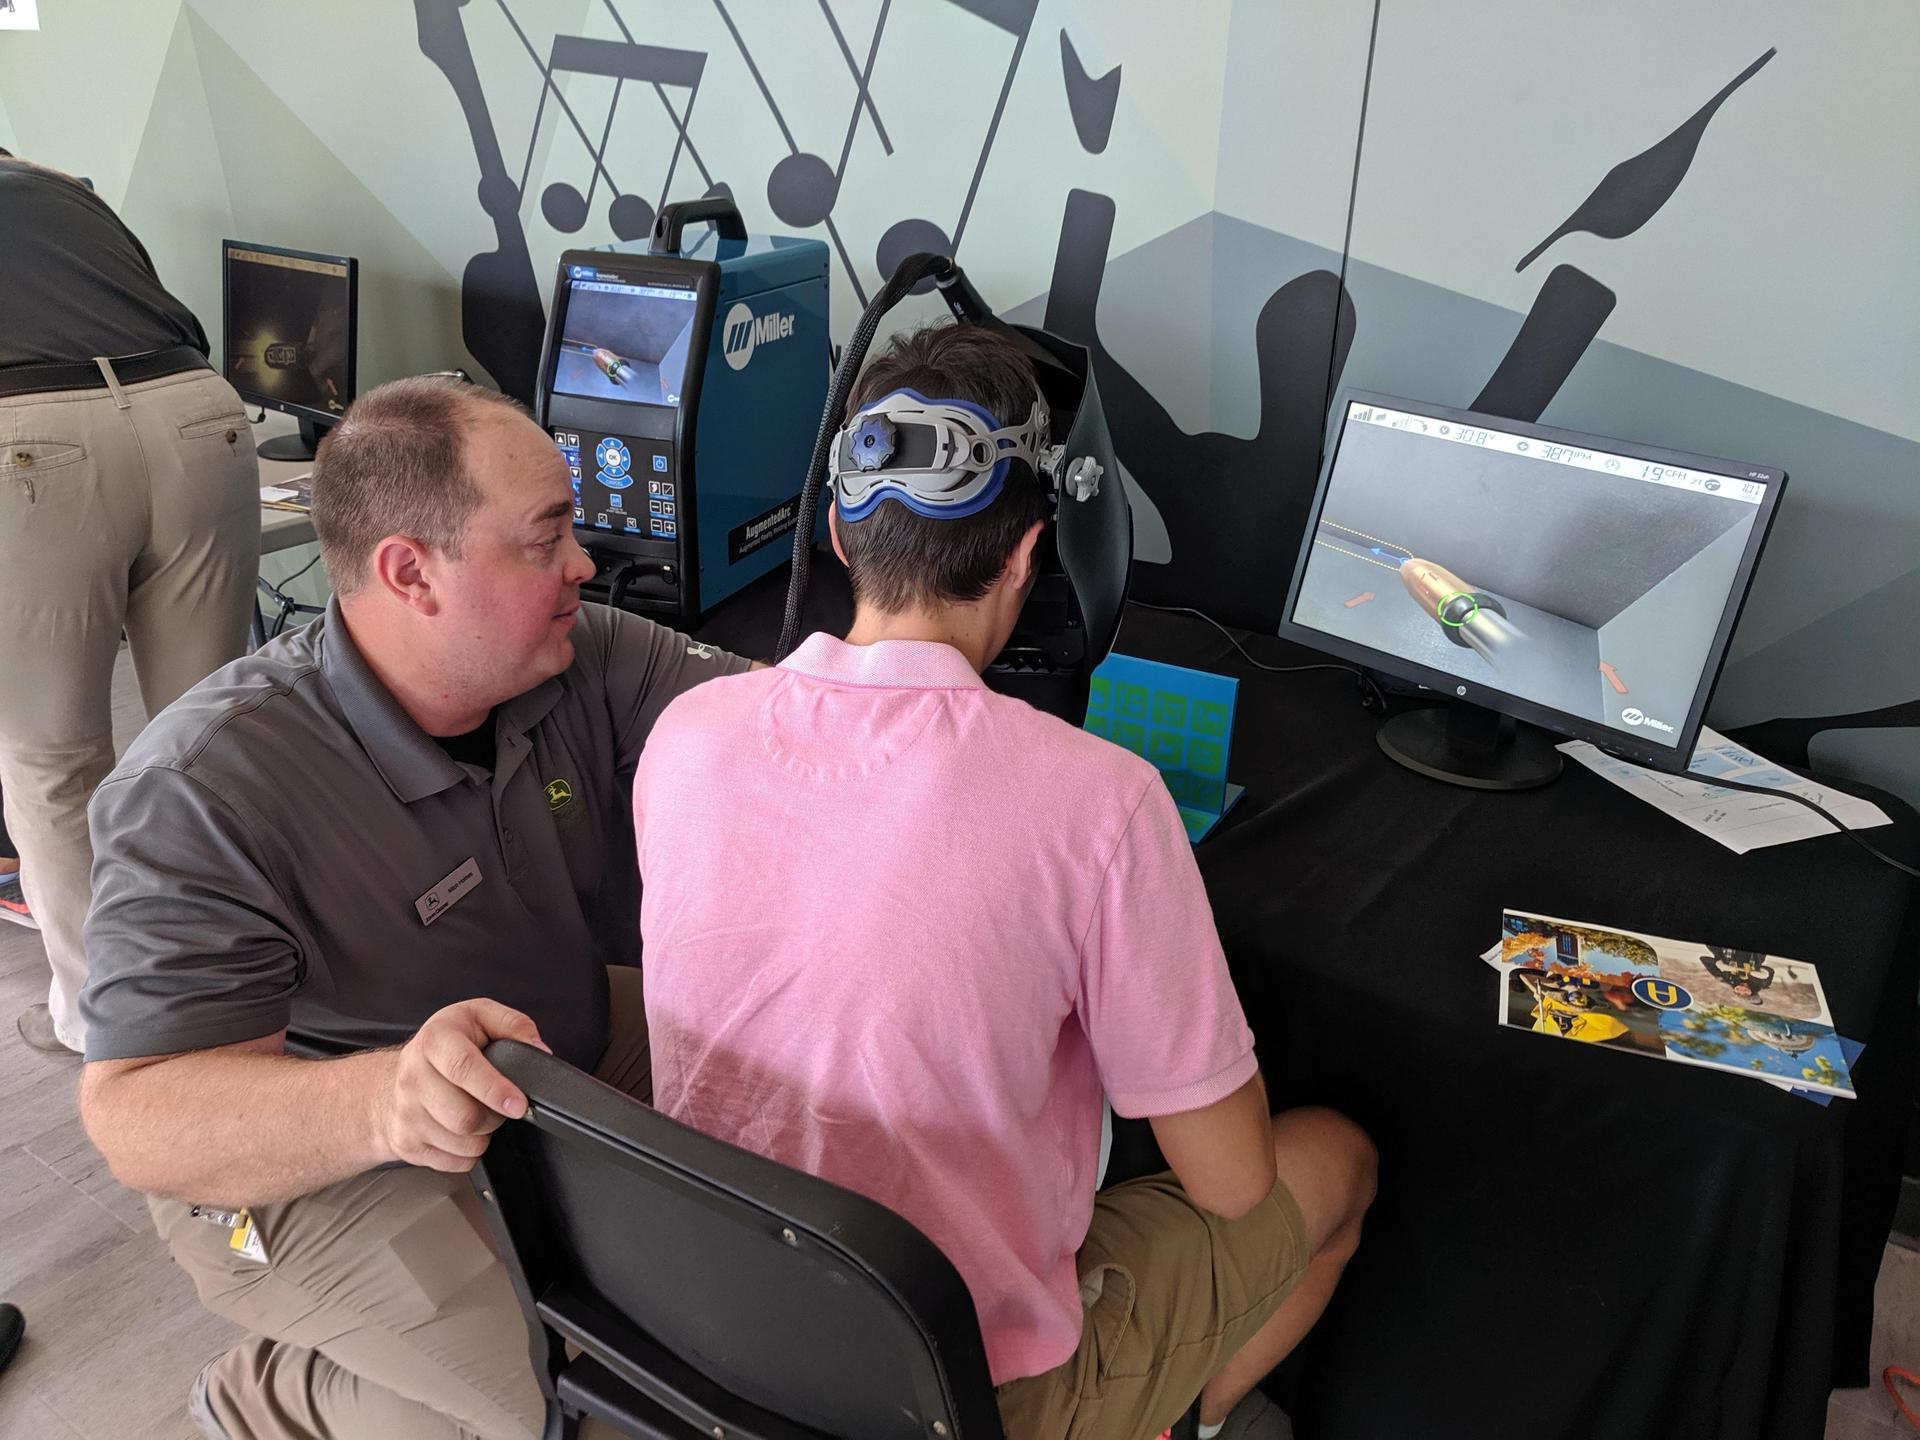 Driving an excavator using a simulator